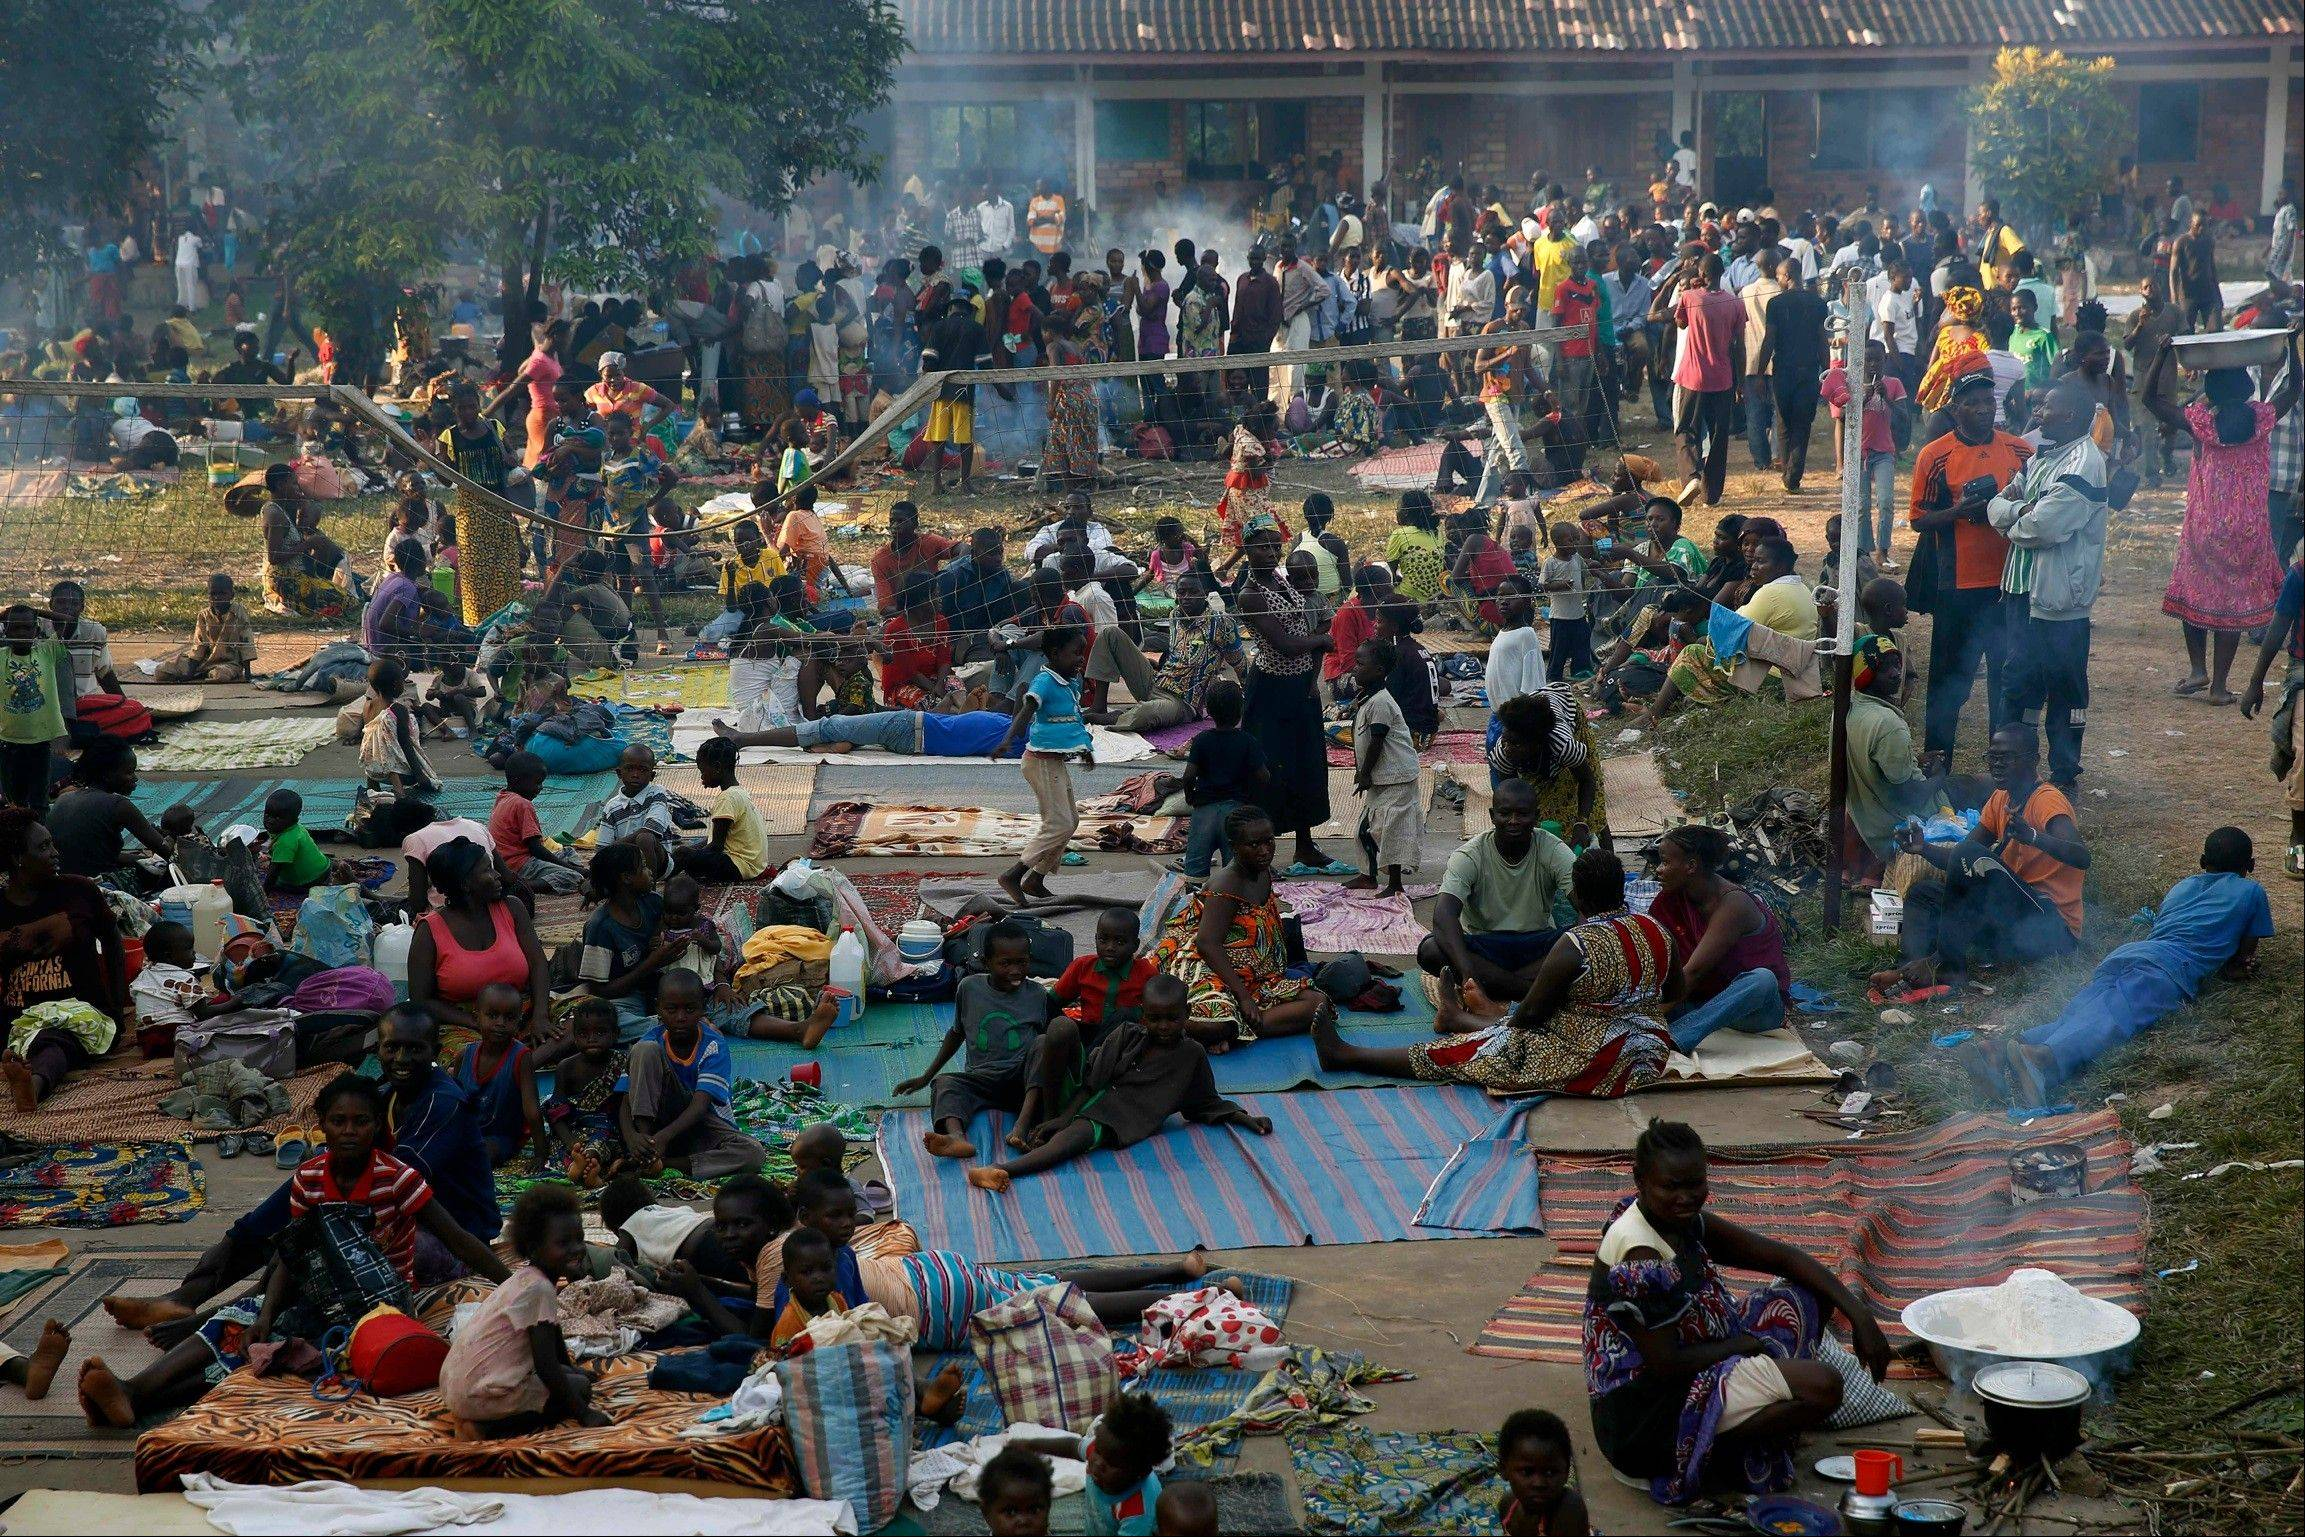 Internally displaced people gather Saturday in the Don Bosco Center outside Bangui, Central African Republic, fearing reprisal attacks from the Muslim ex-rebels who control the territory.